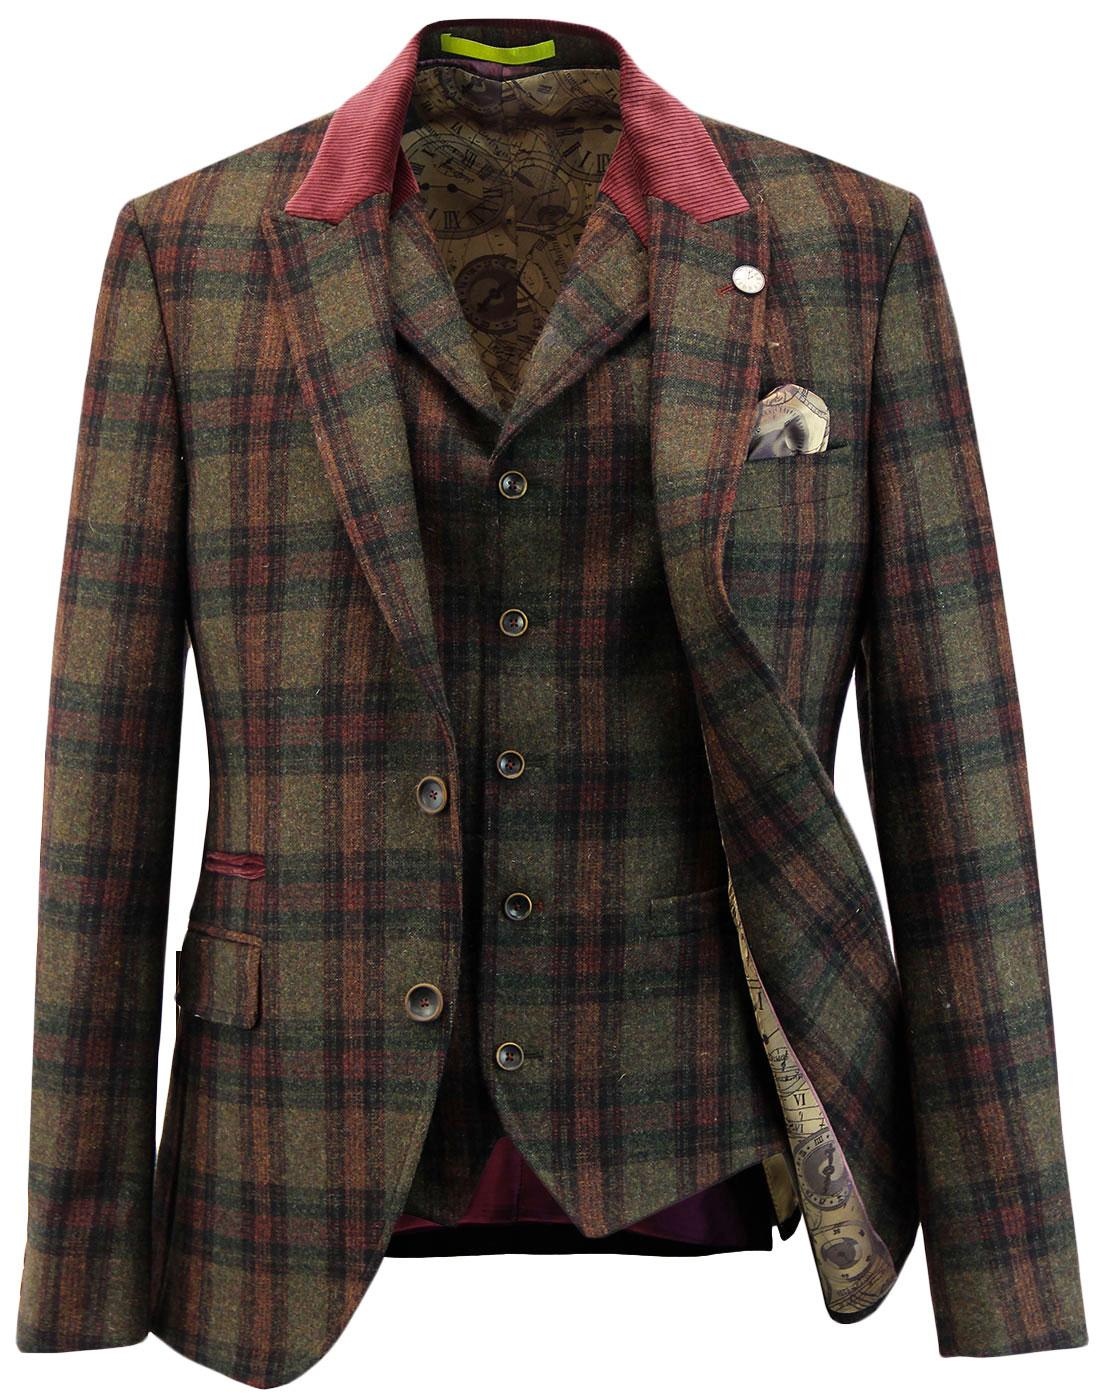 Temple GIBSON LONDON Matching Blazer & Waistcoat